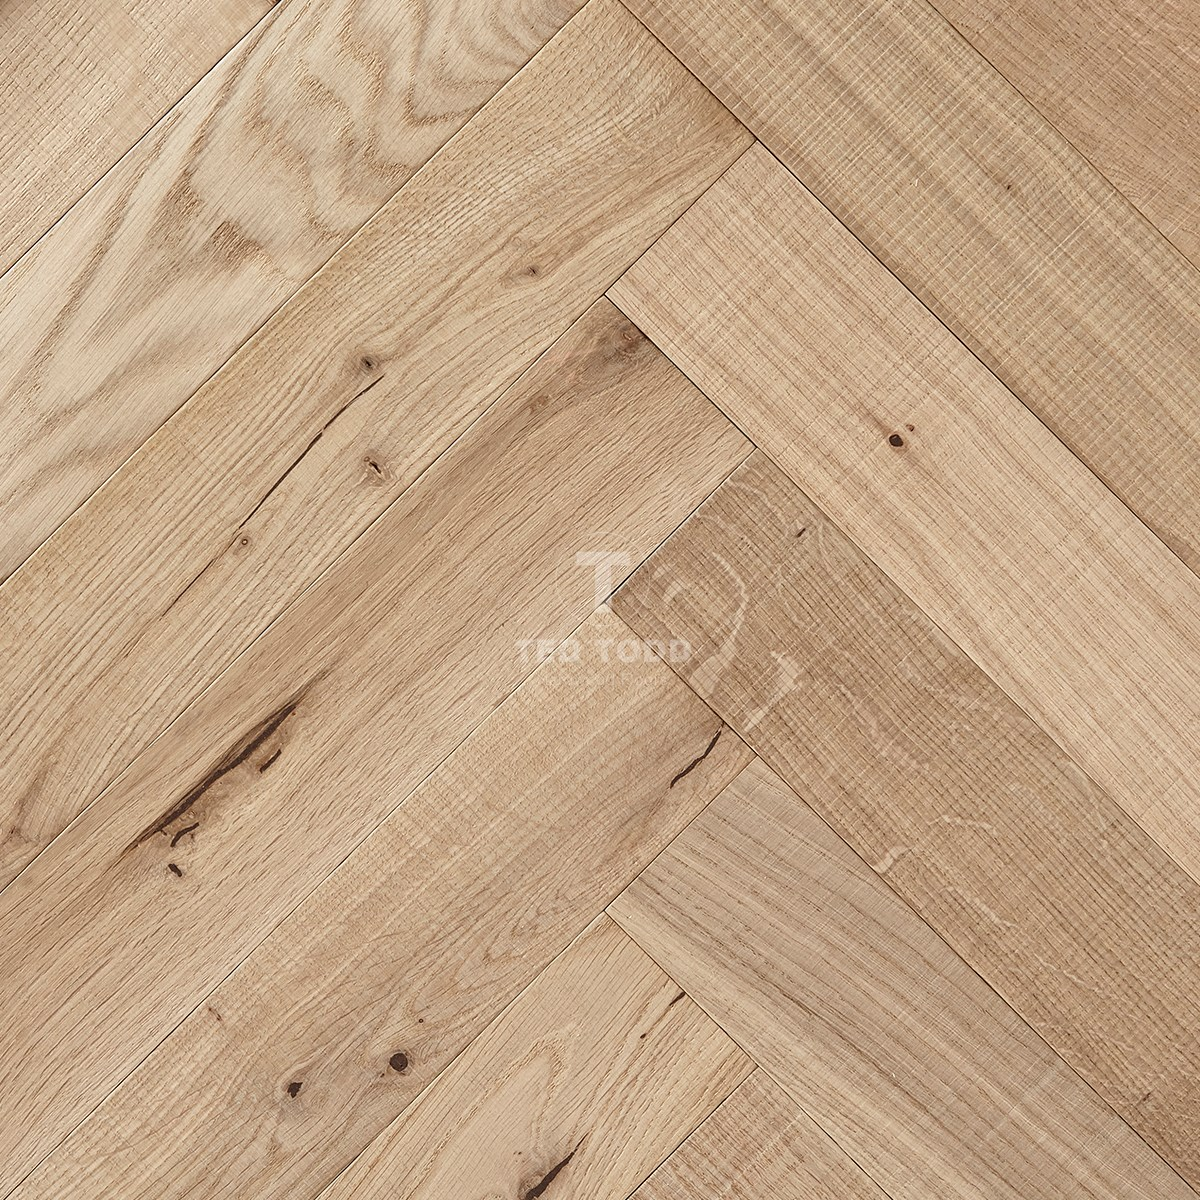 Kentish herringbone woodworks by ted todd engineered for Engineered wood flooring manufacturers